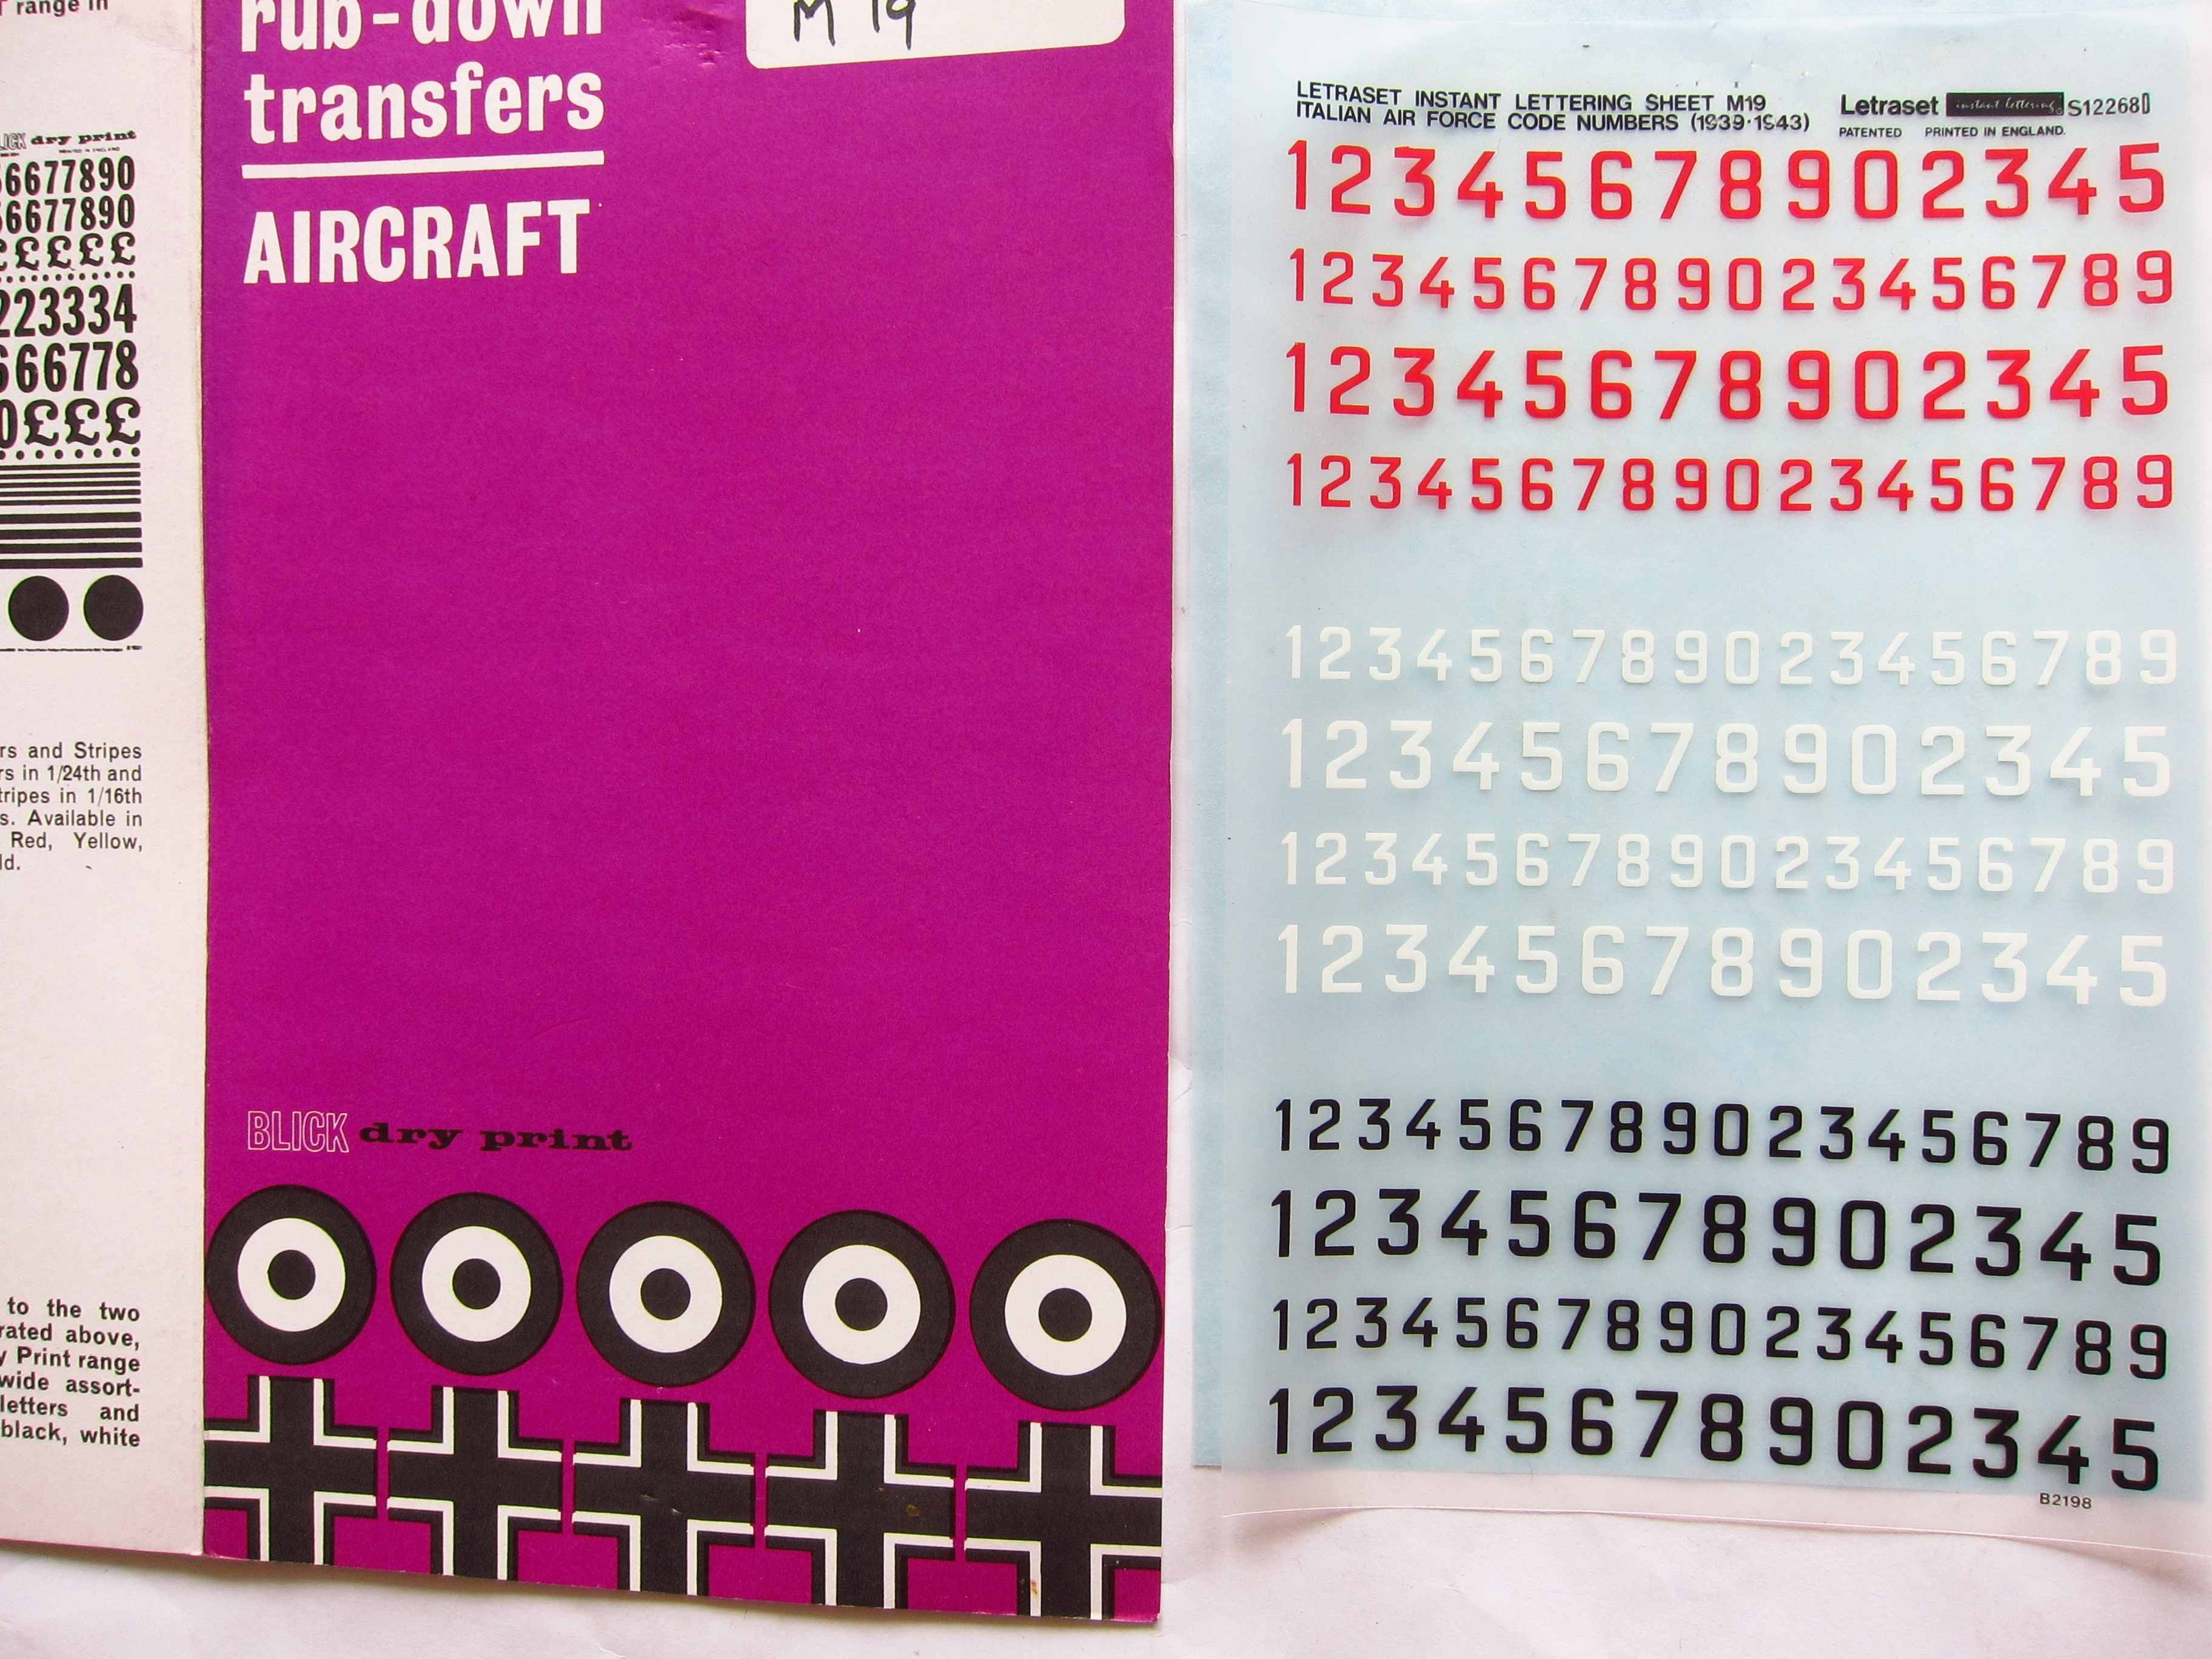 Letraset Italian air force numbers.JPG